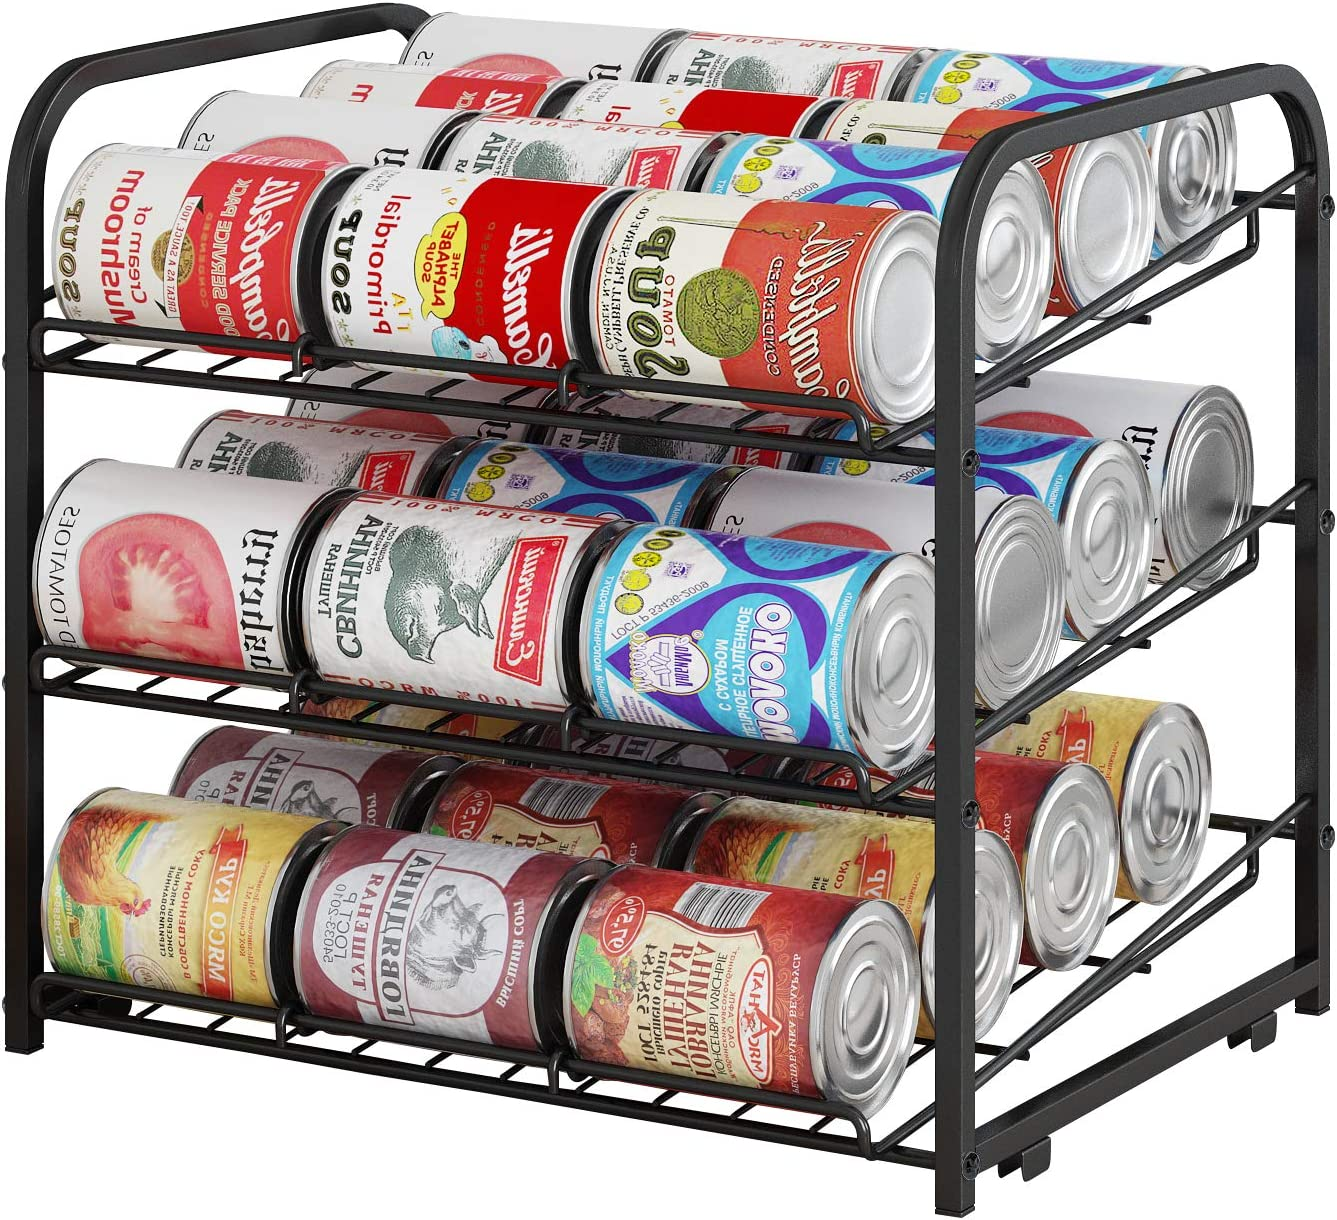 AIYAKA 3 Tier Stackable Can Rack Organizer,for food storage,kitchen cabinets or countertops,Storage for 36 cans,Black